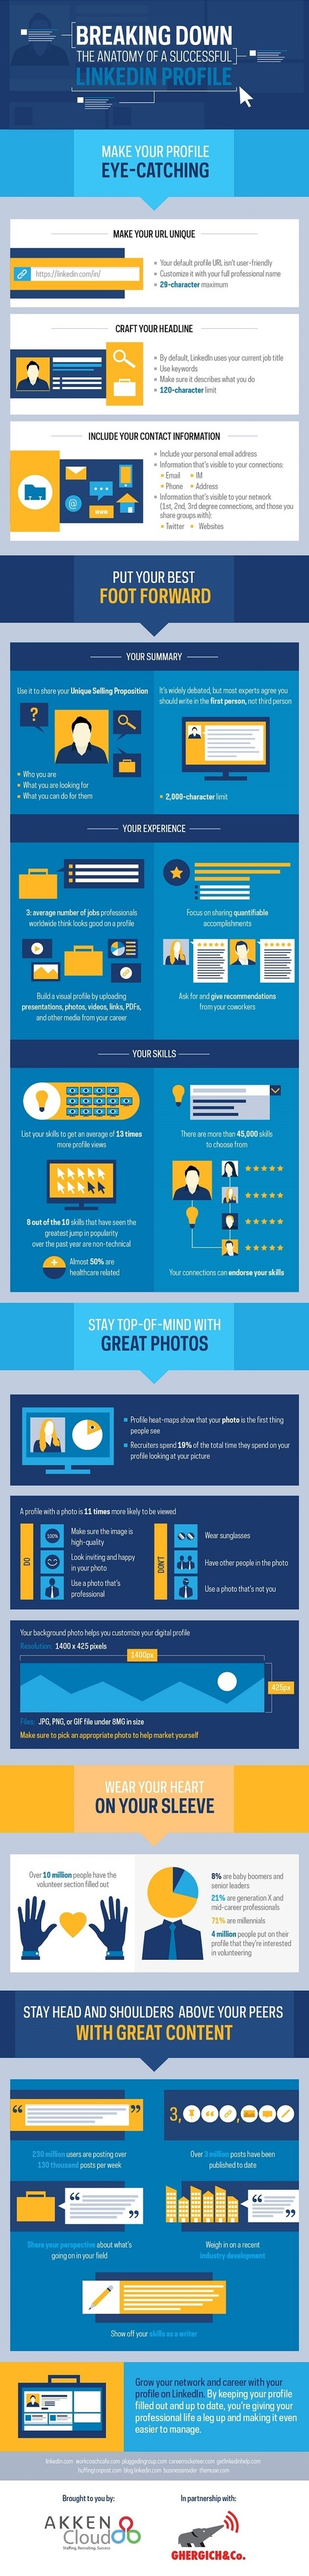 The Anatomy of a Successful LinkedIn Profile #Infographic | Surviving Social Chaos | Scoop.it